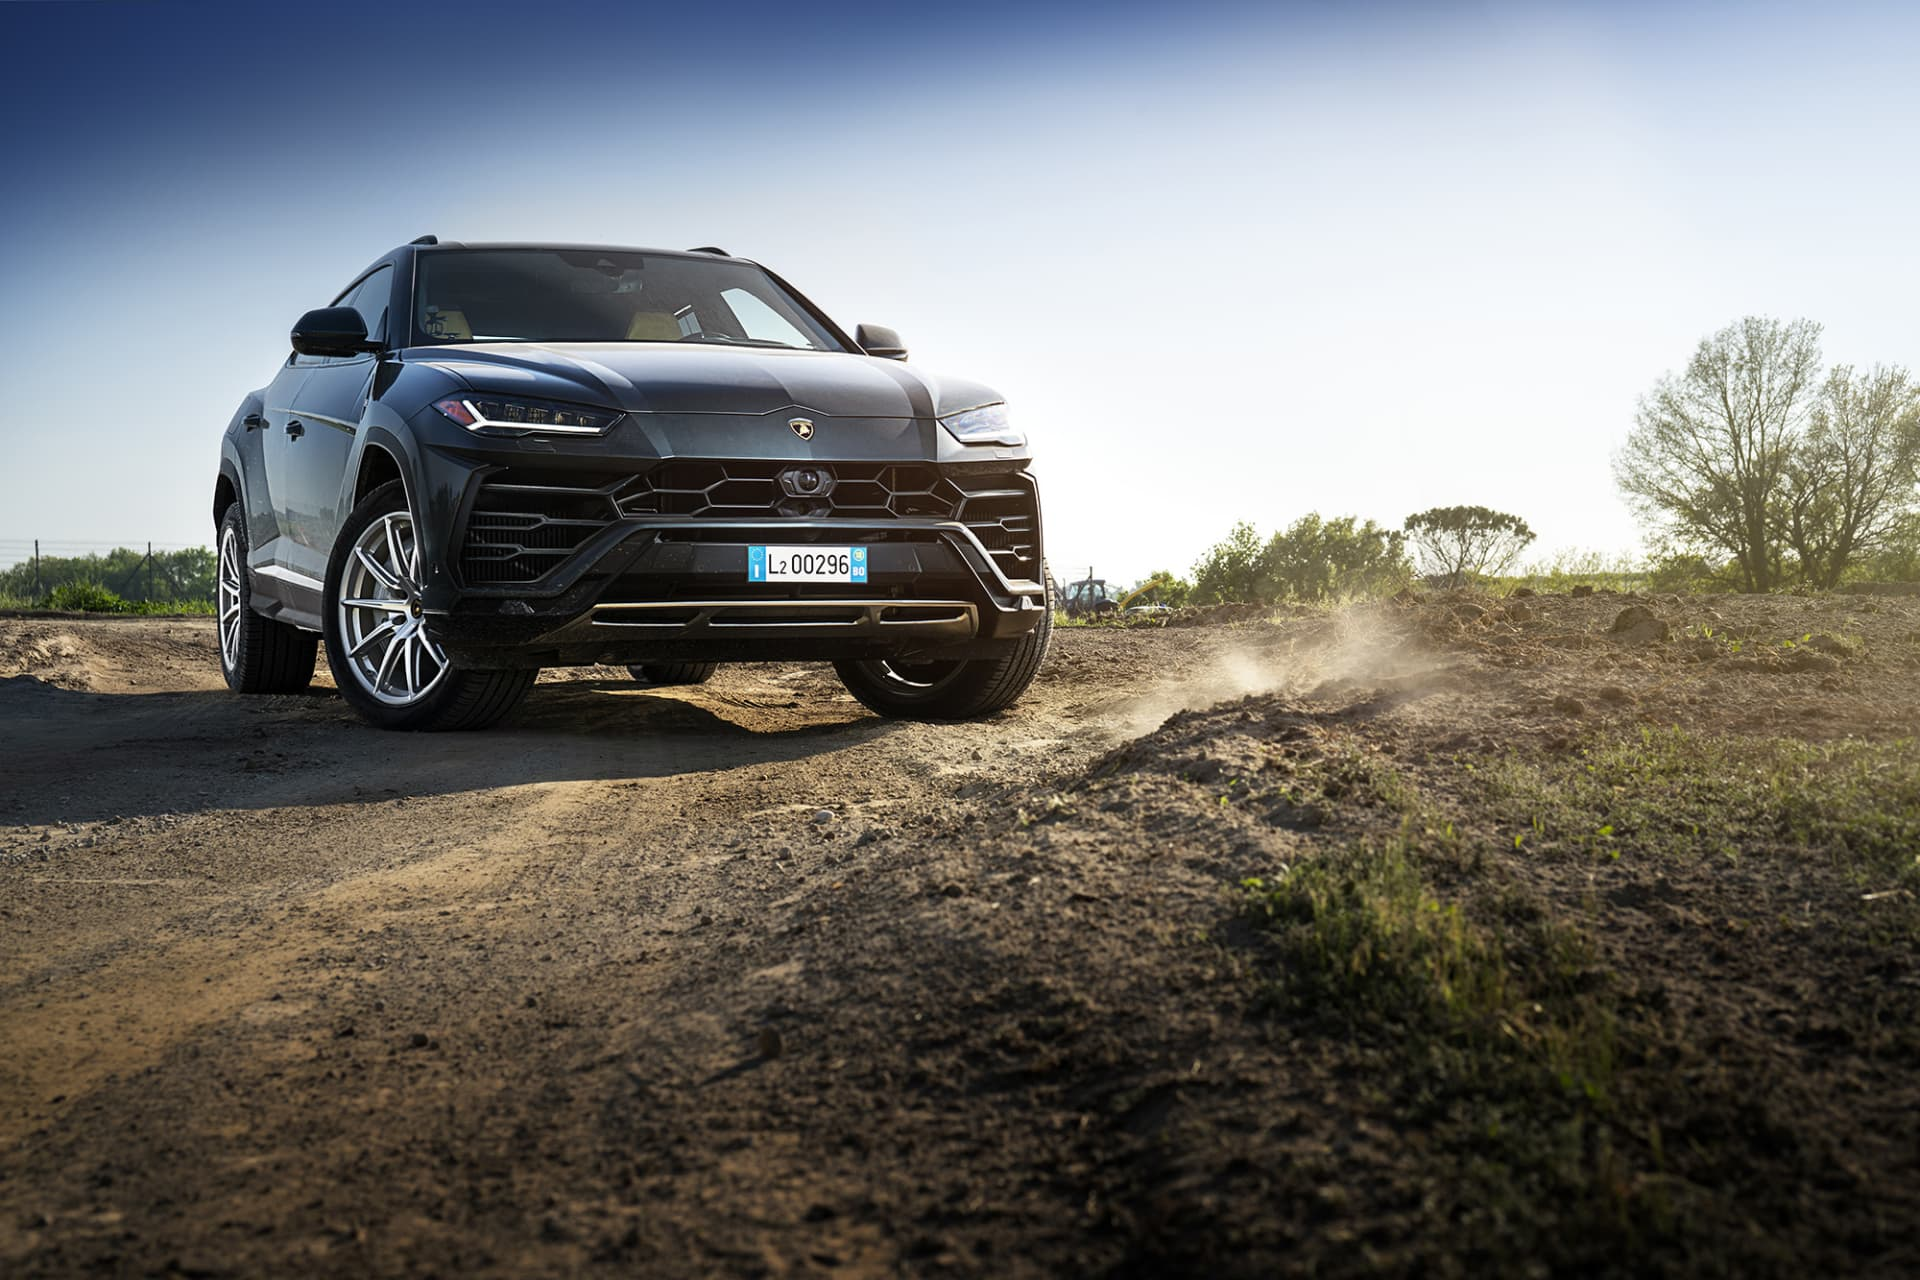 Urus is the new bull from San't Agata Bolognese who is not afraid of little dust and gravel.